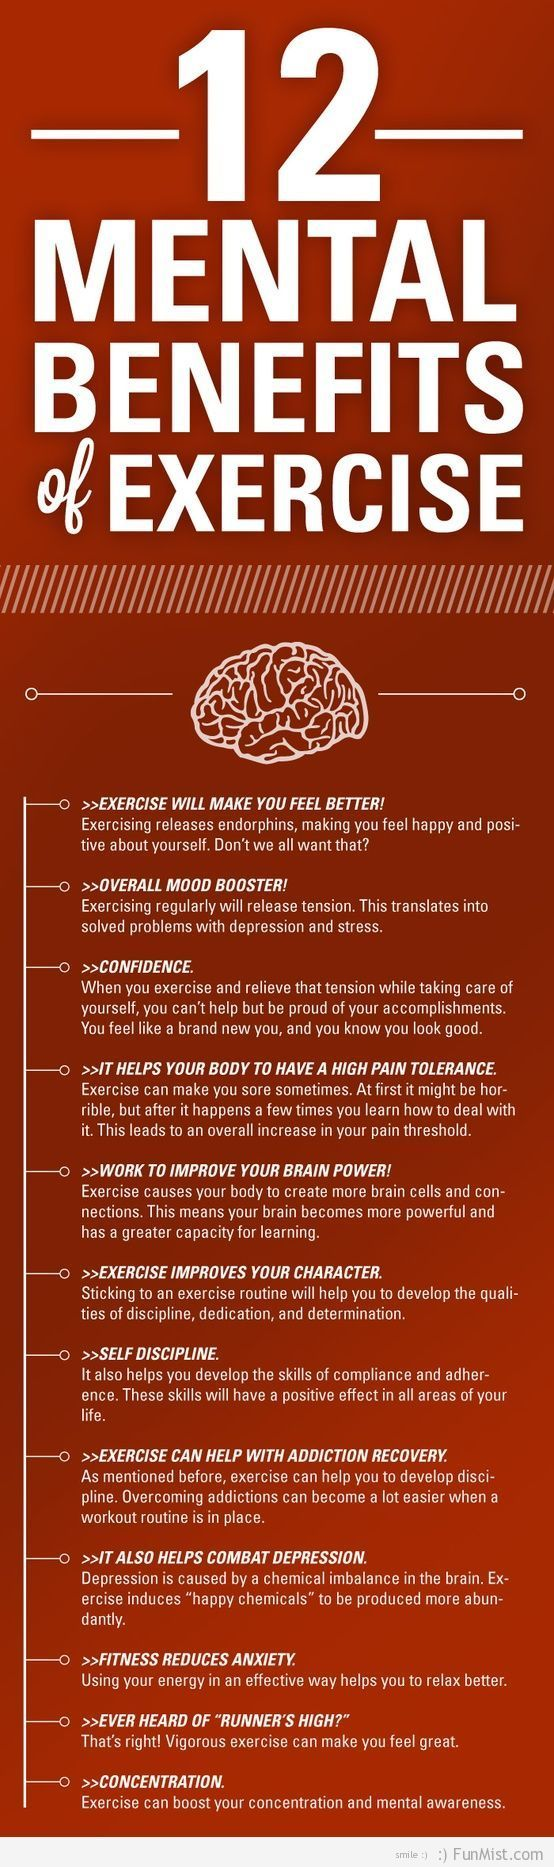 Exercise the natural Antidepressant